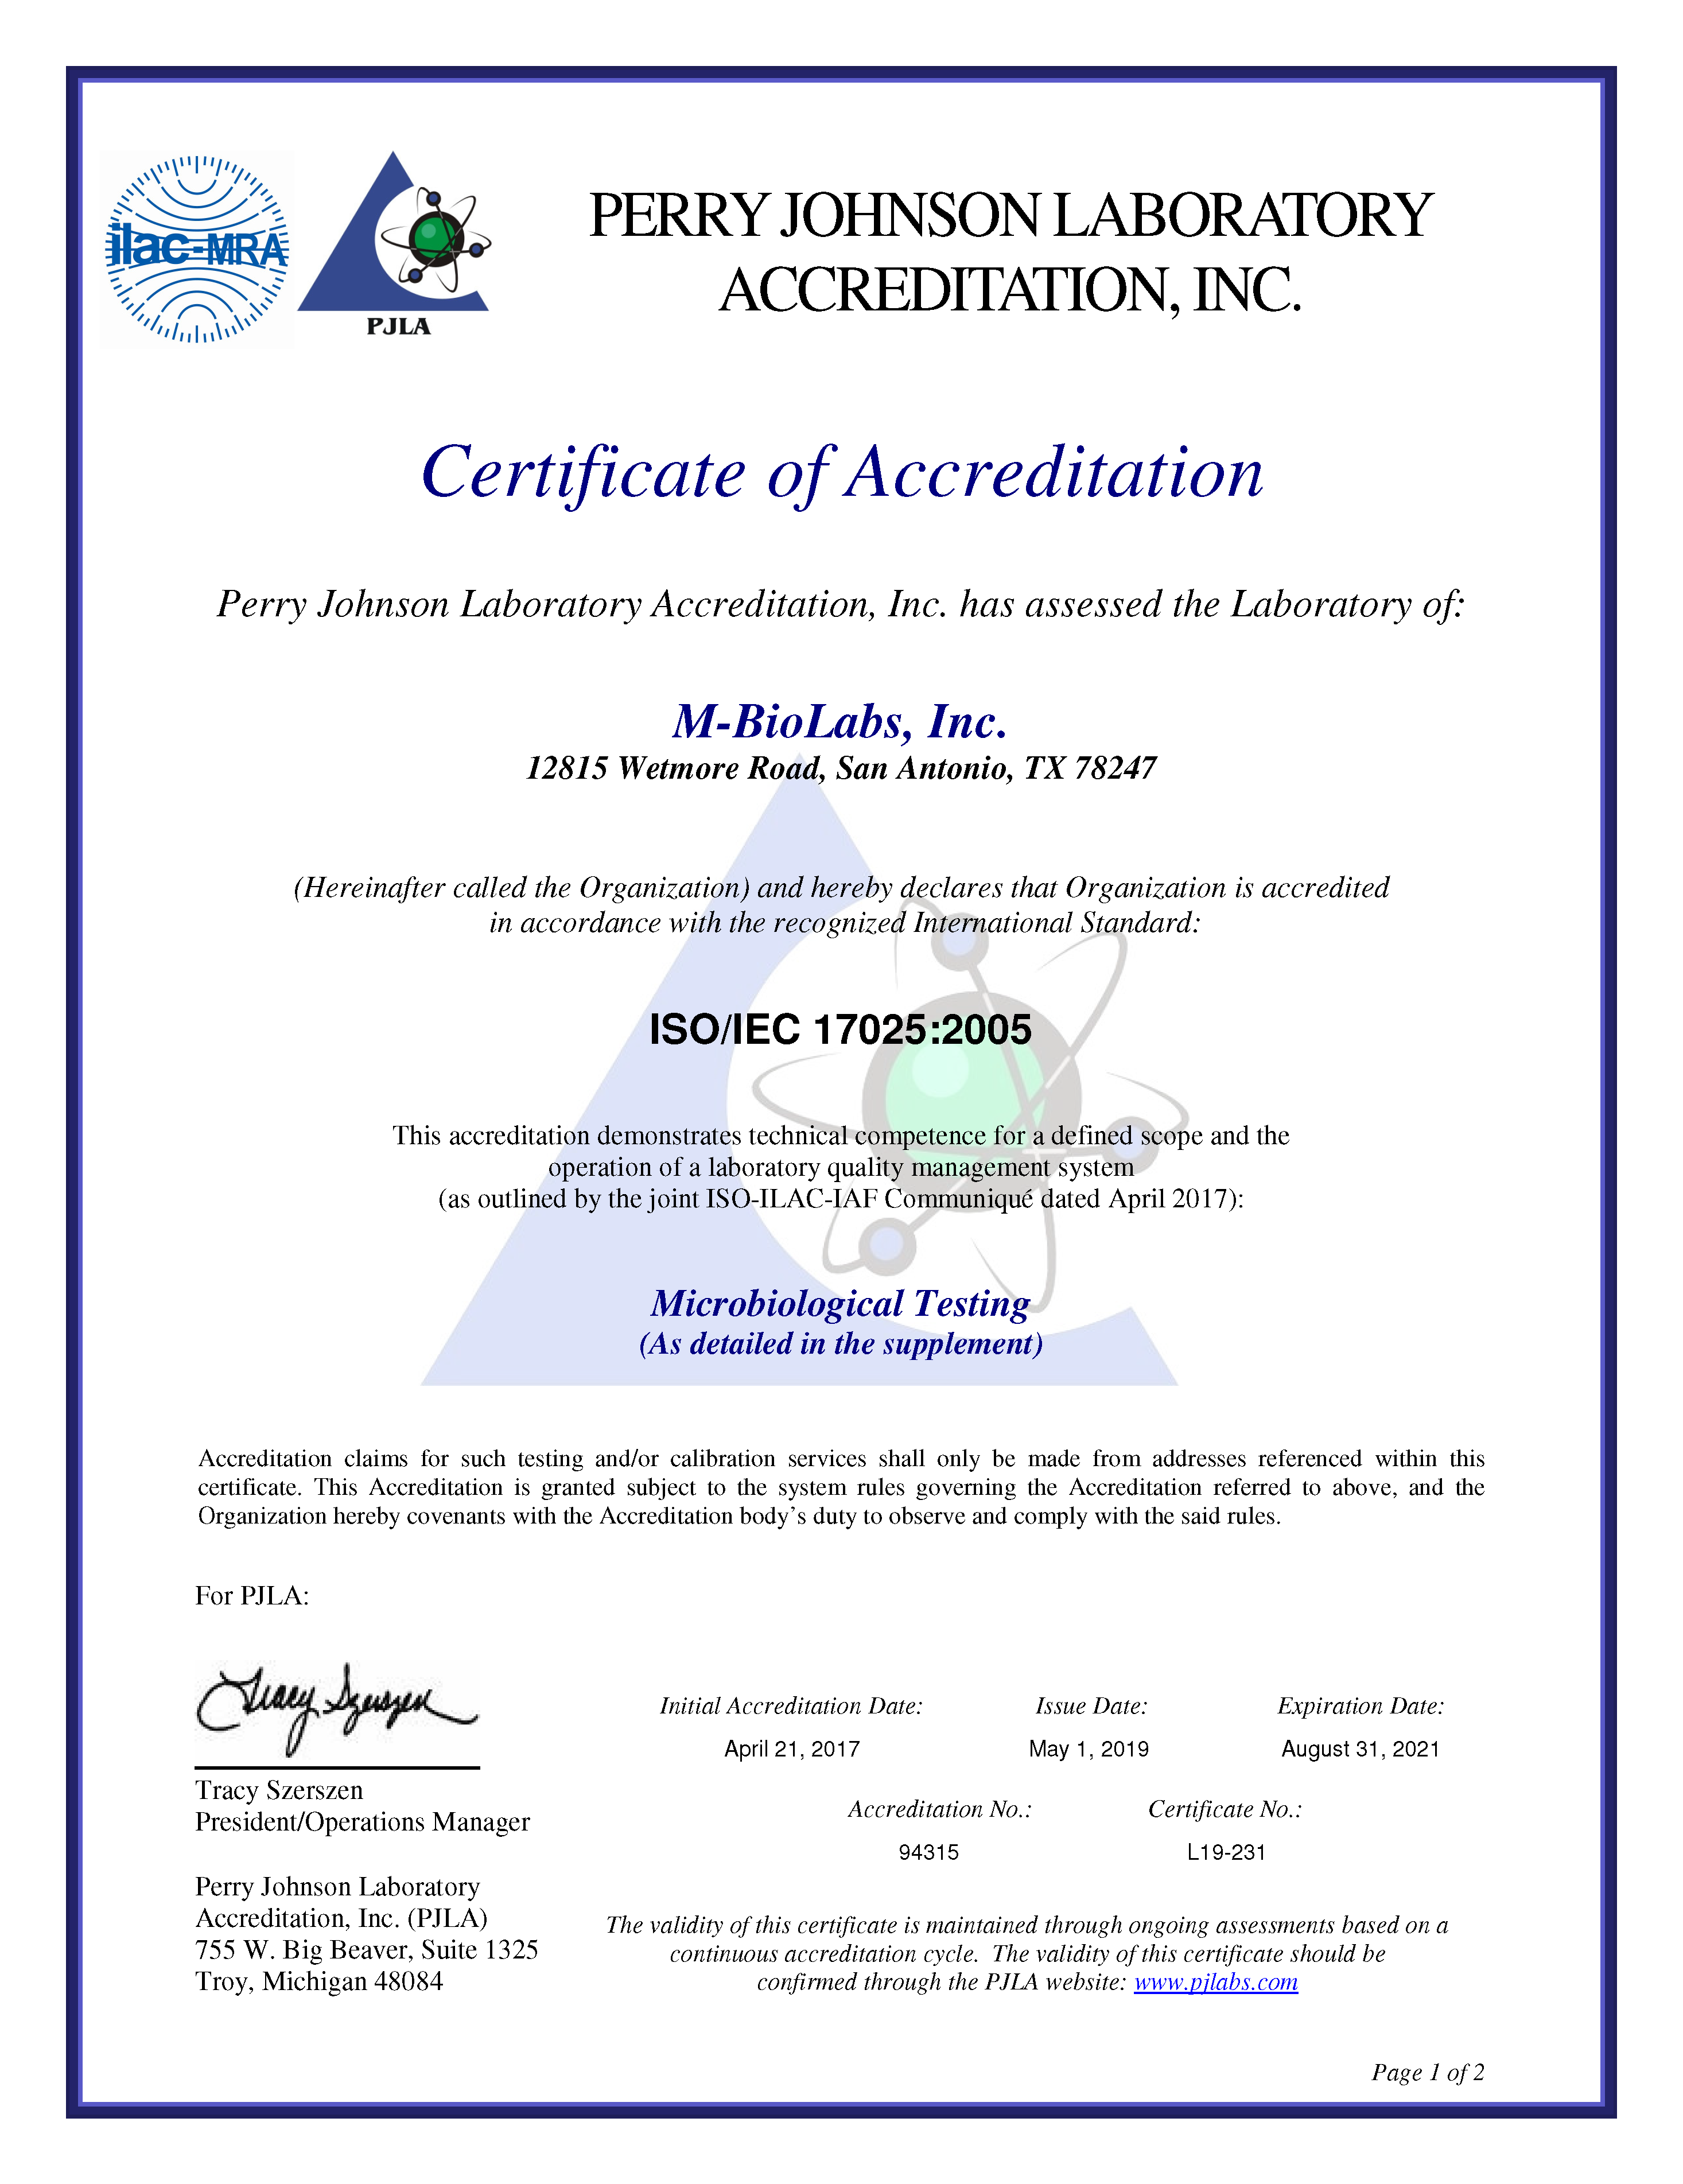 ISO 17025 Accredition